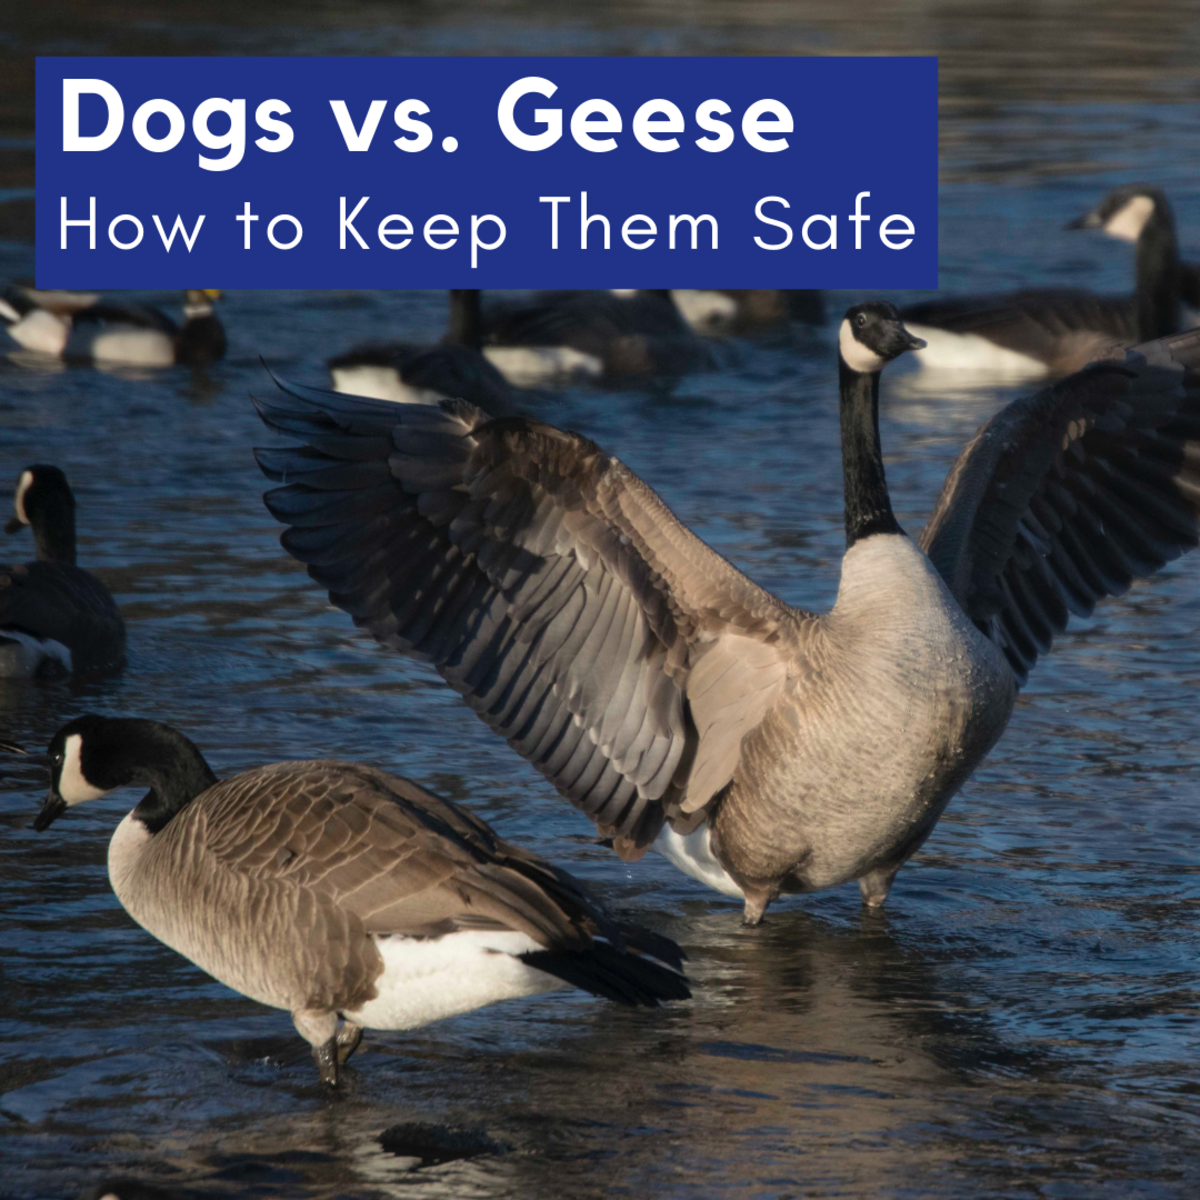 When Wild Geese and Dogs Meet   PetHelpful